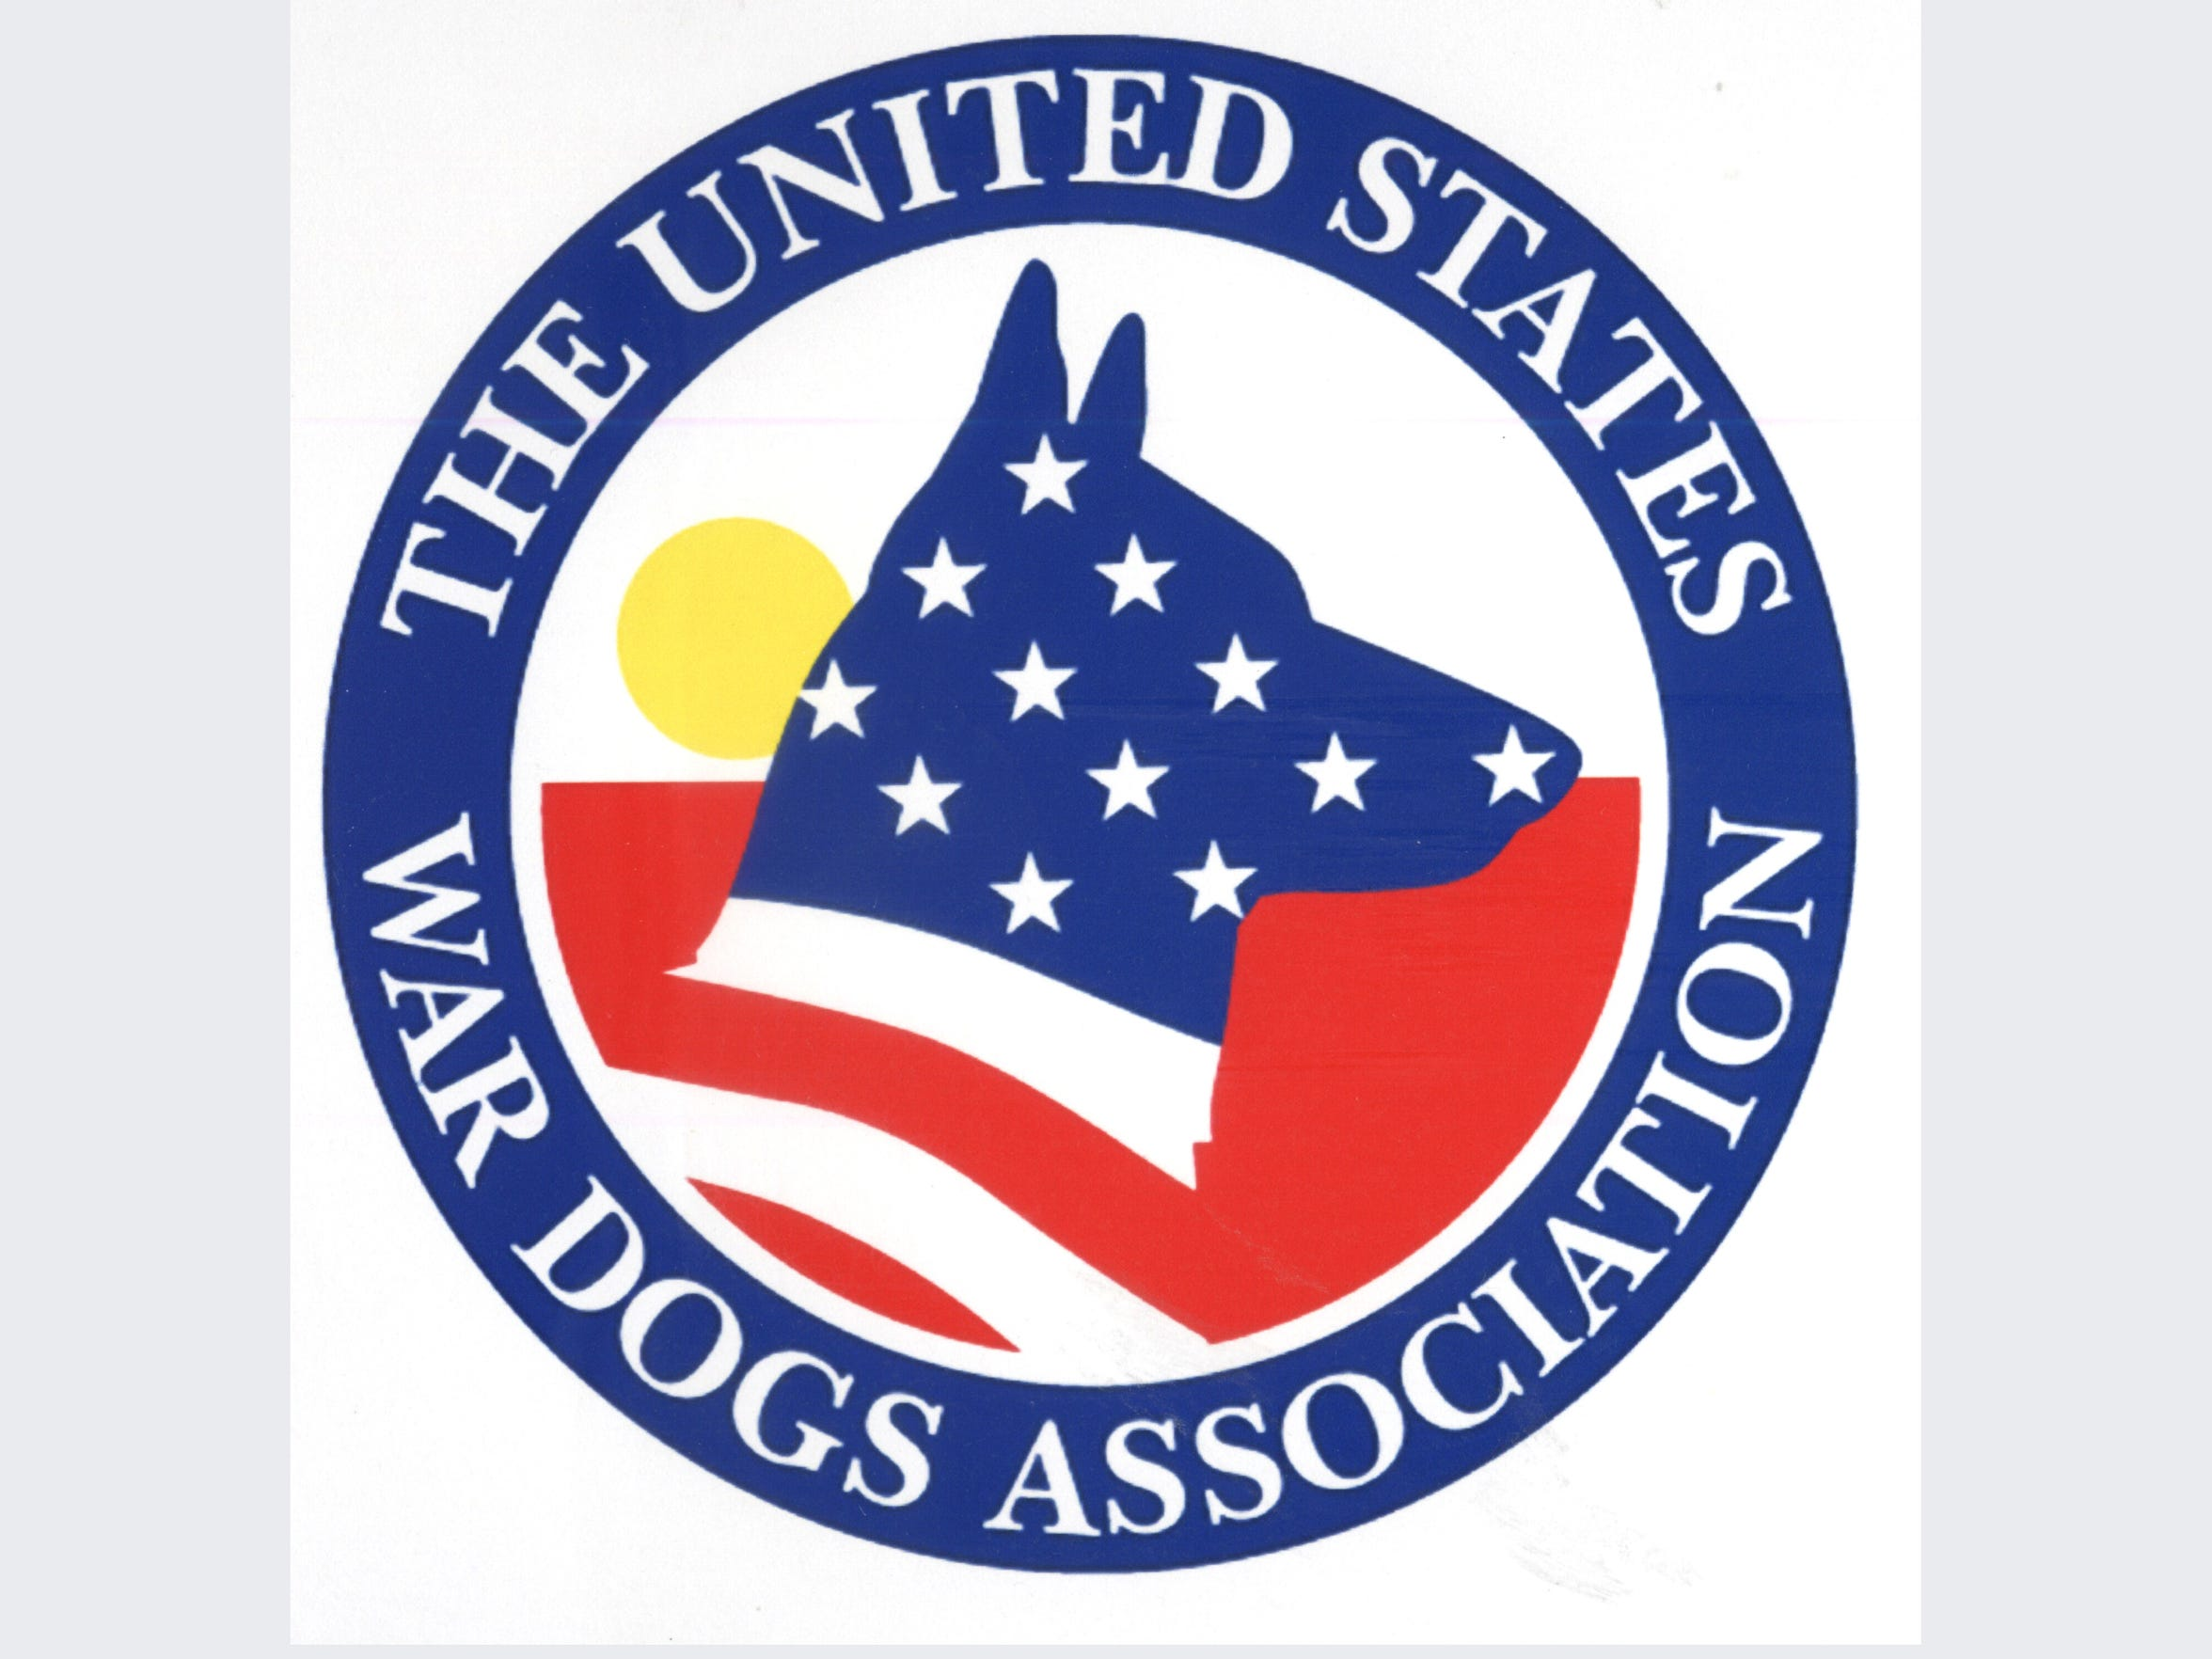 The U.S War Dogs Association logo